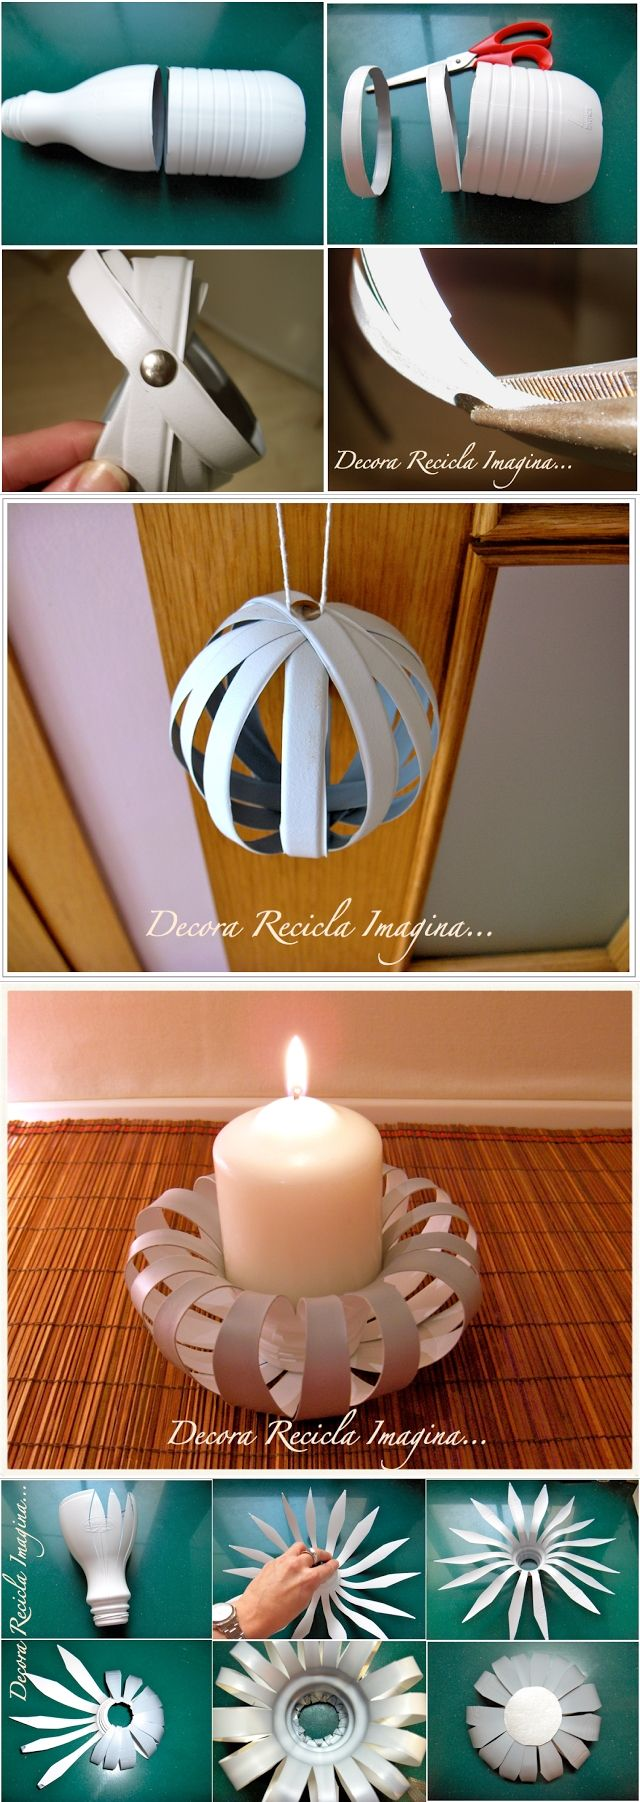 DIY Candle Holder from Old Plastic Bottle....3 Unique Plastic Bottles Recycling Ideas For Home Decor #DIYCrafts